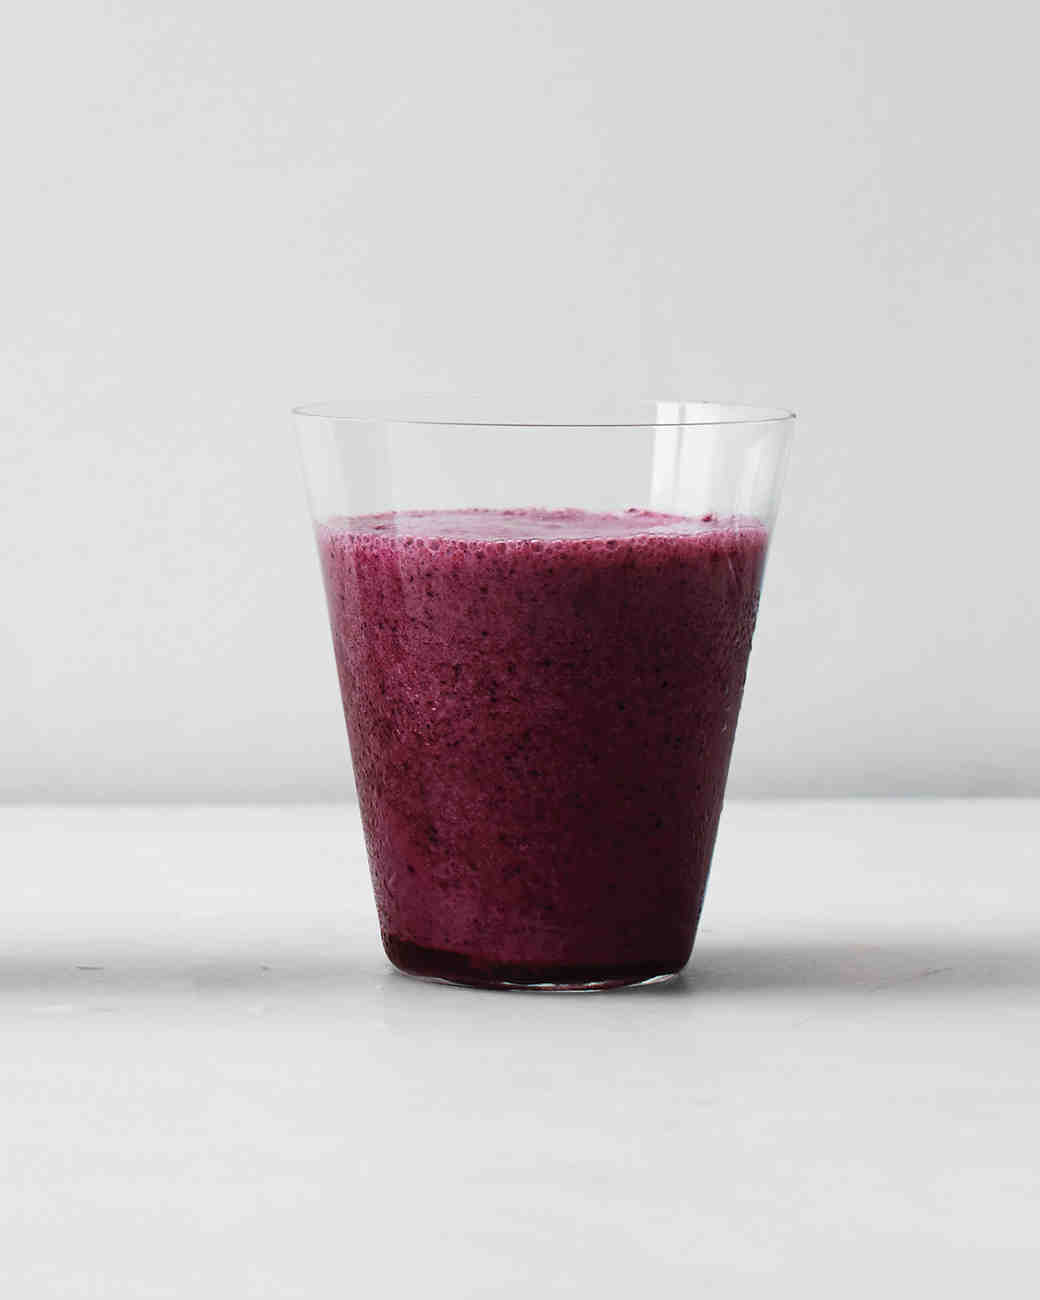 clean-slate-juice-mixed-berry-tofu-smoothie-0115.jpg